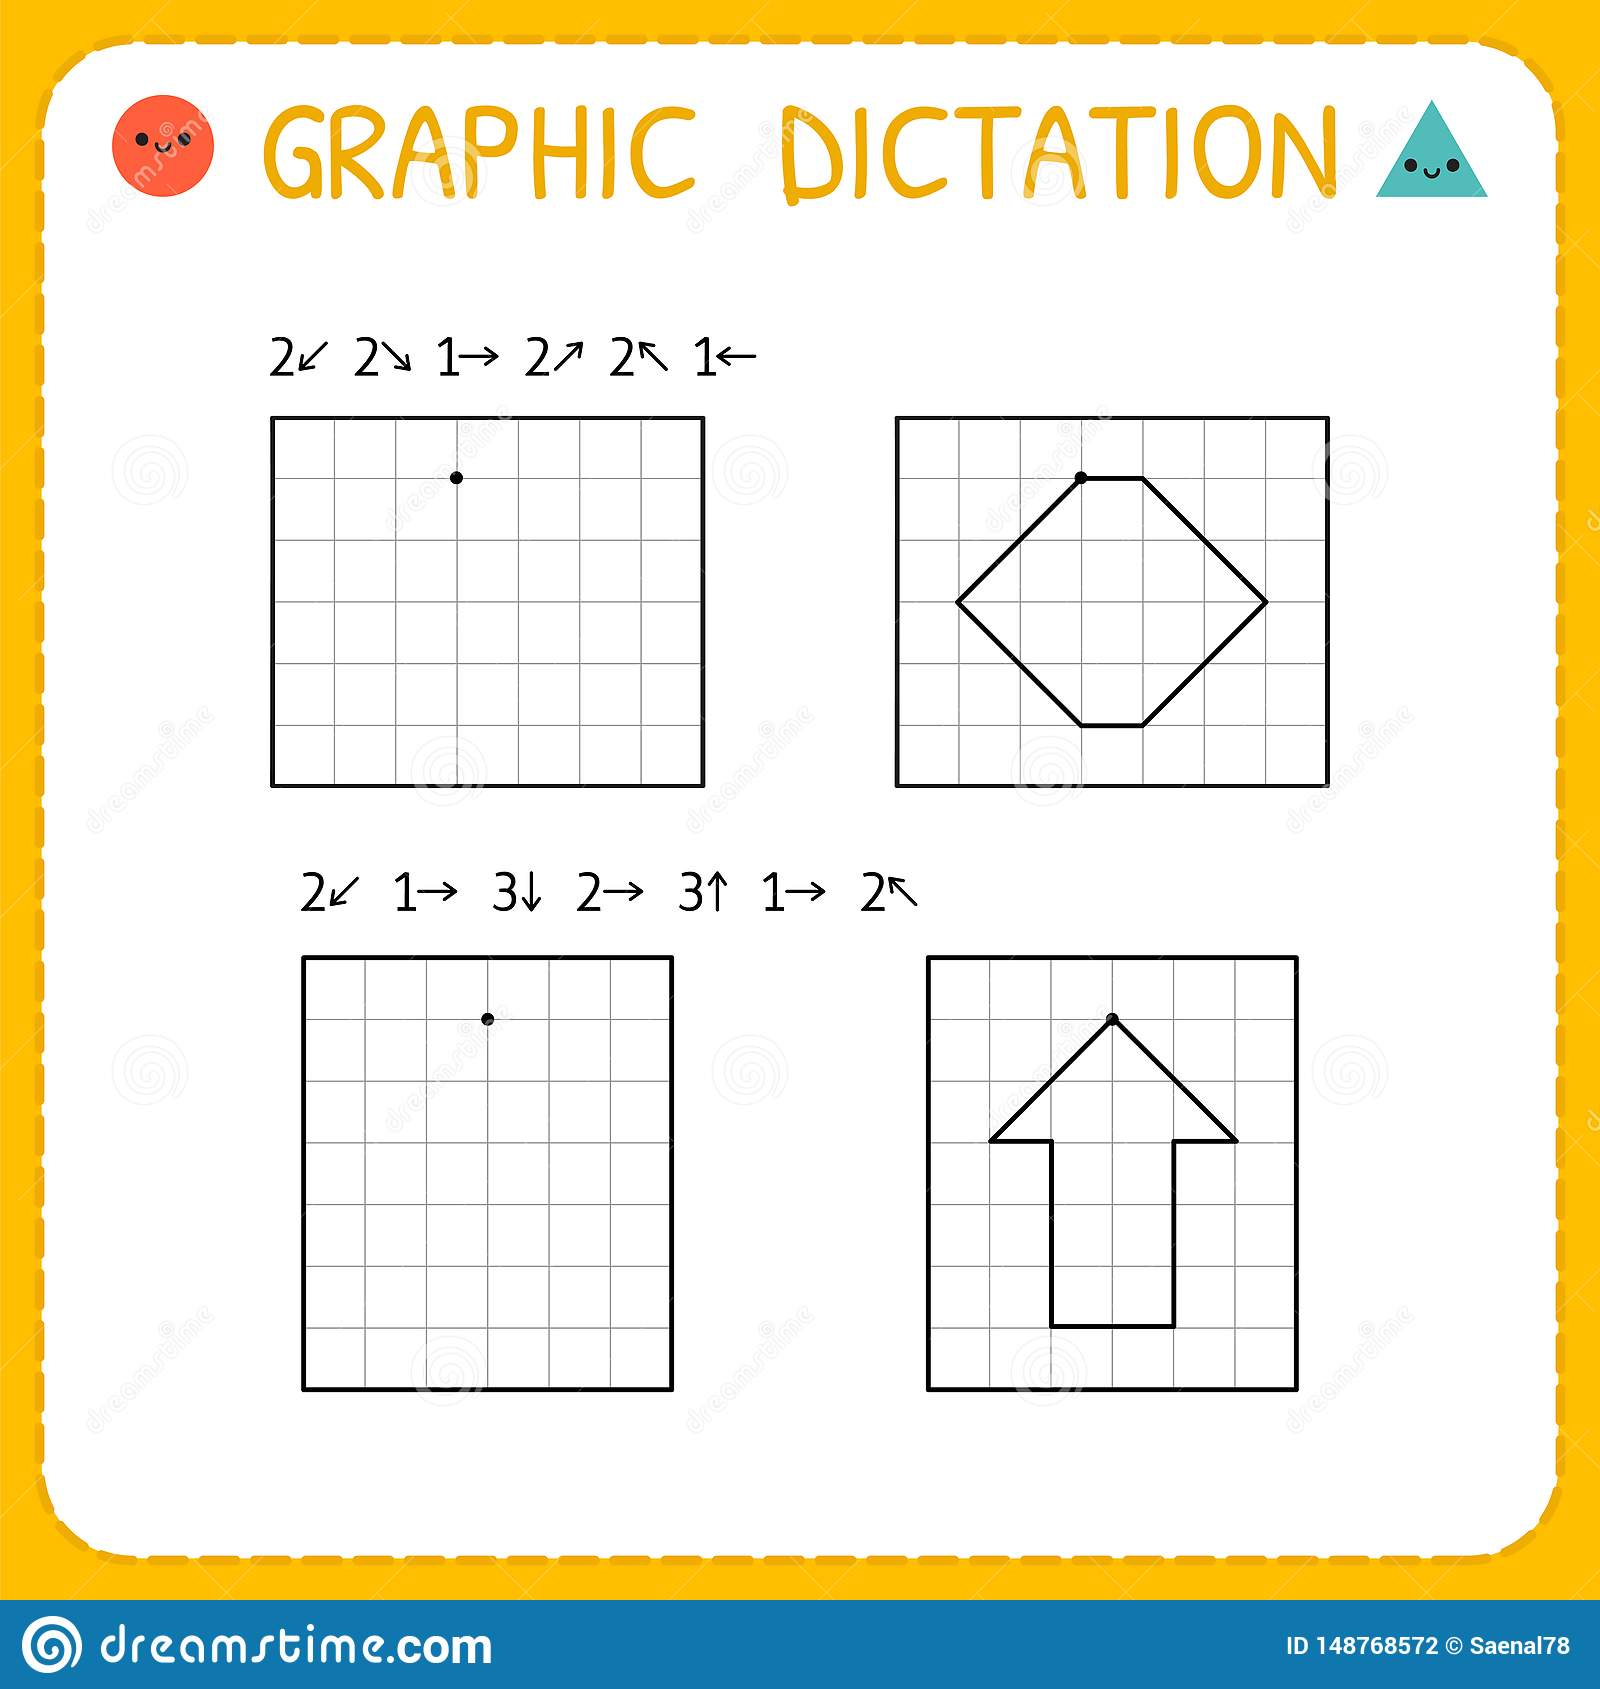 Graphic Dictation Preschool Worksheet For Practicing